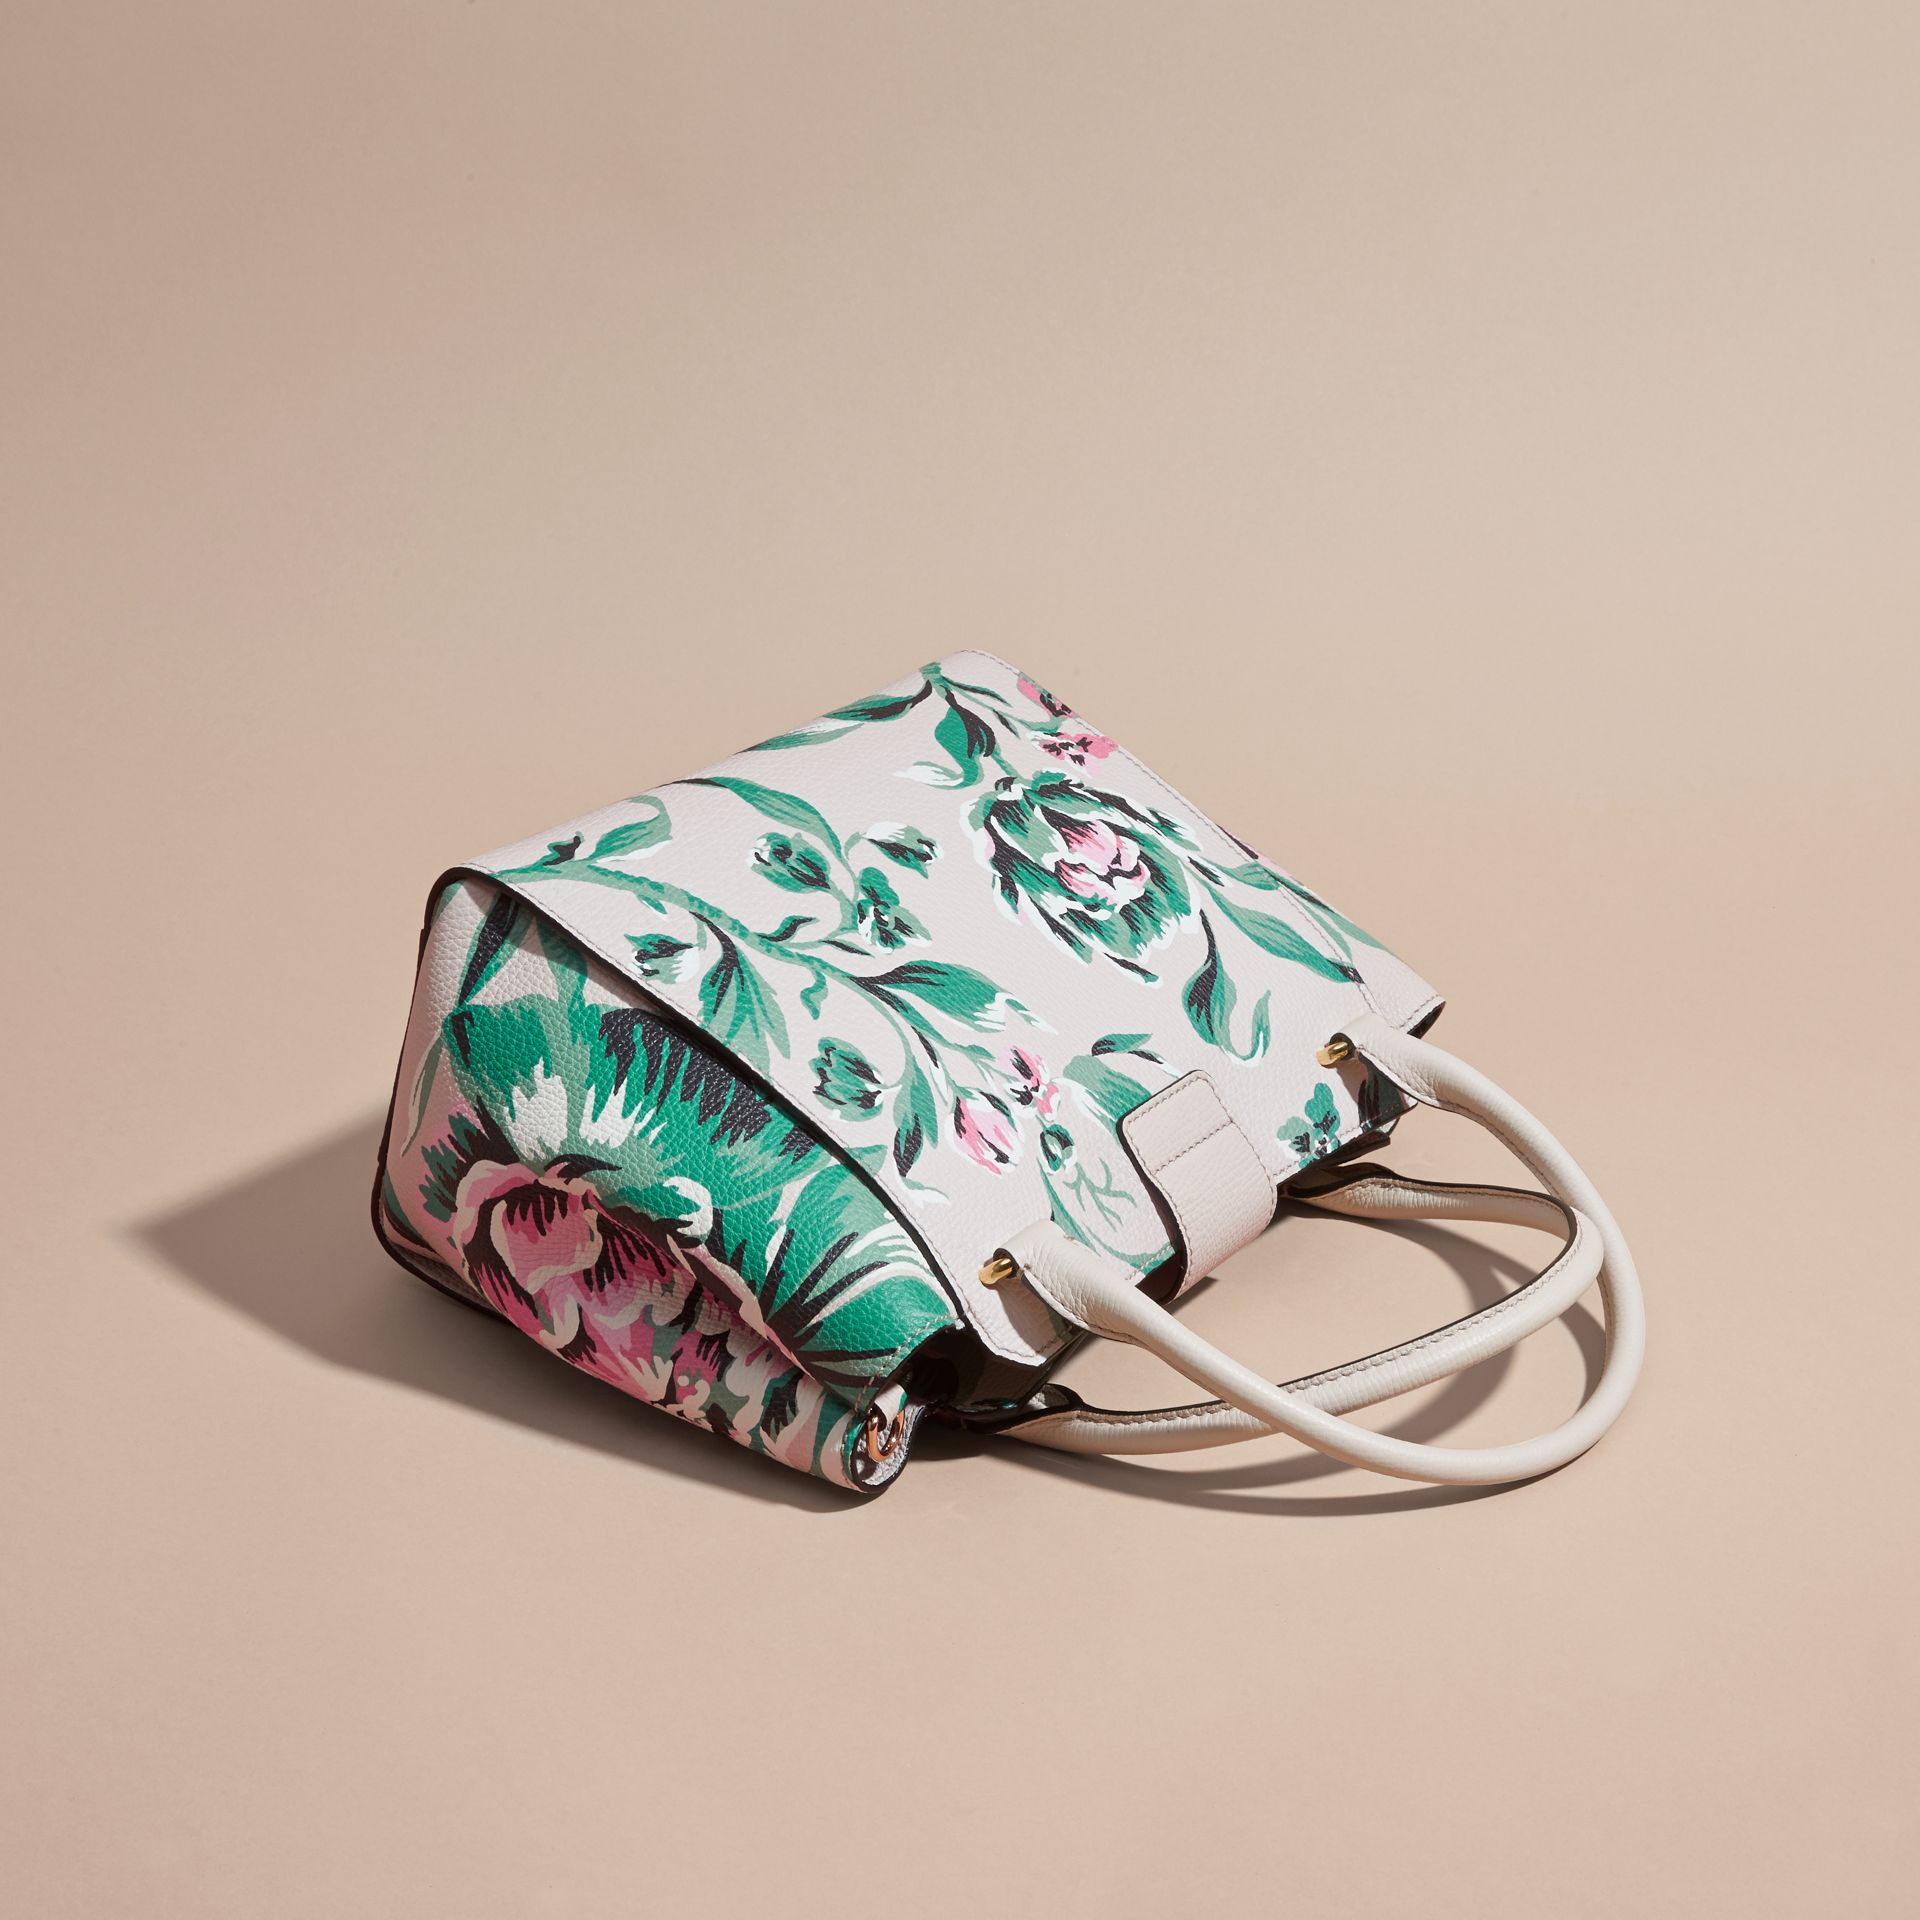 Natural/emerald green The Medium Buckle Tote in Peony Rose Print Leather Natural/emerald Green - gallery image 5